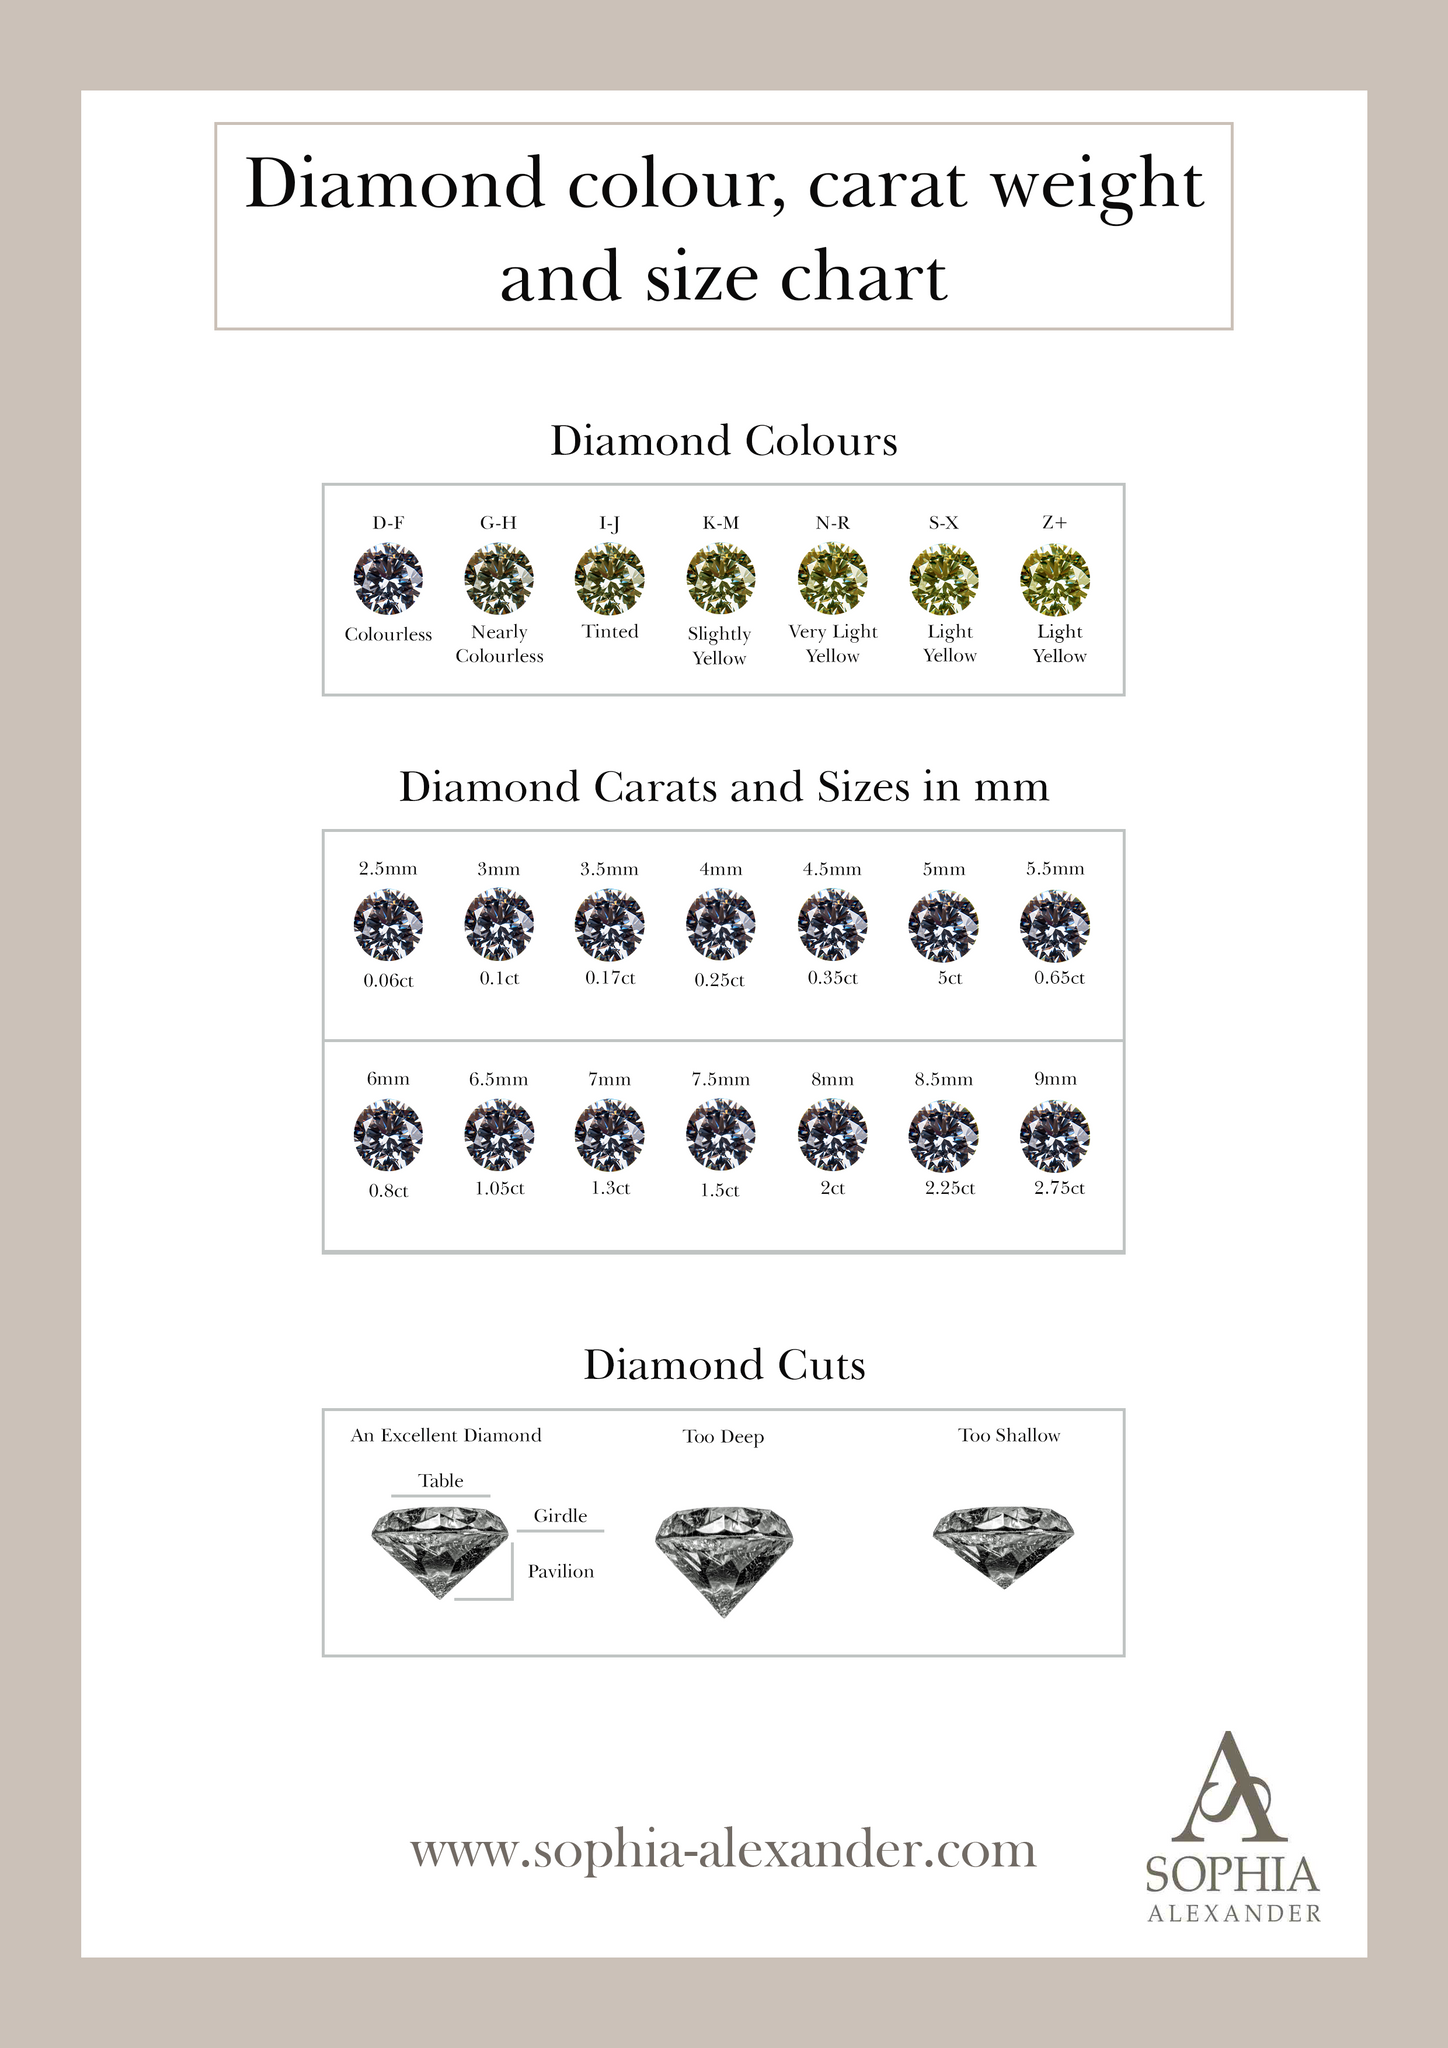 Diamond Carat Weight, Size and Cut Chart.  The 4C's